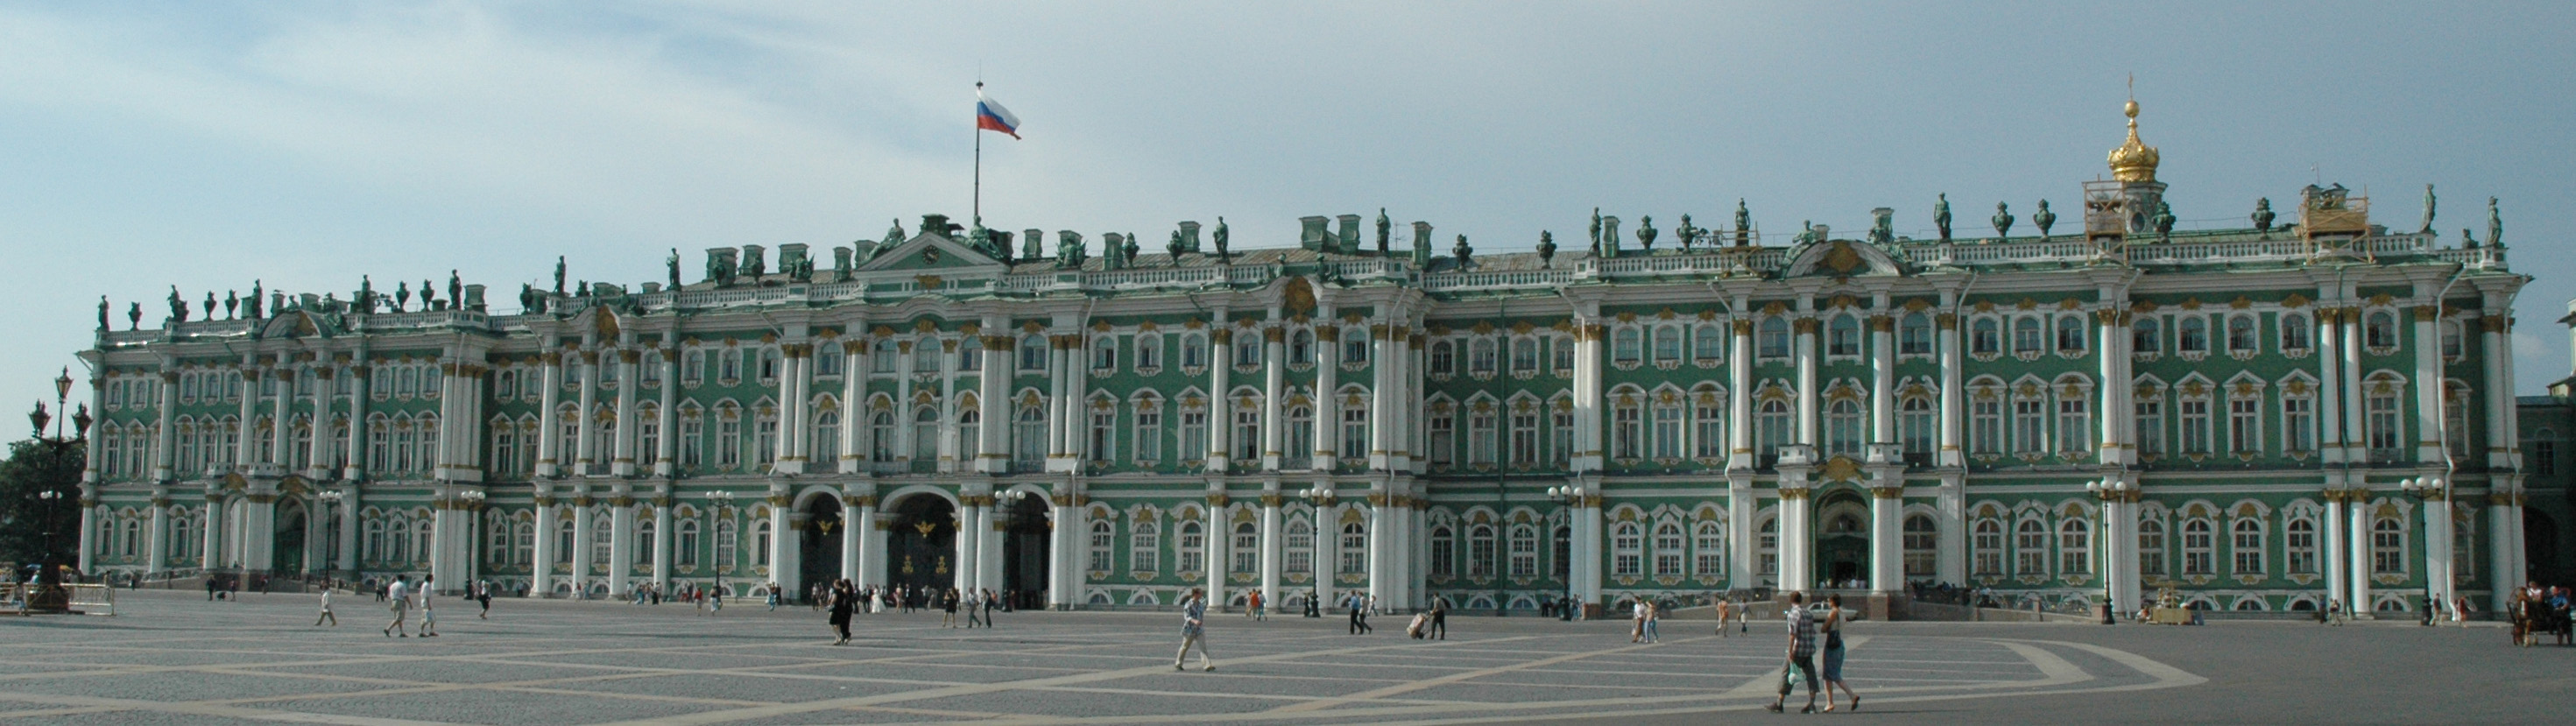 The Winter Palace, near St Petersburg